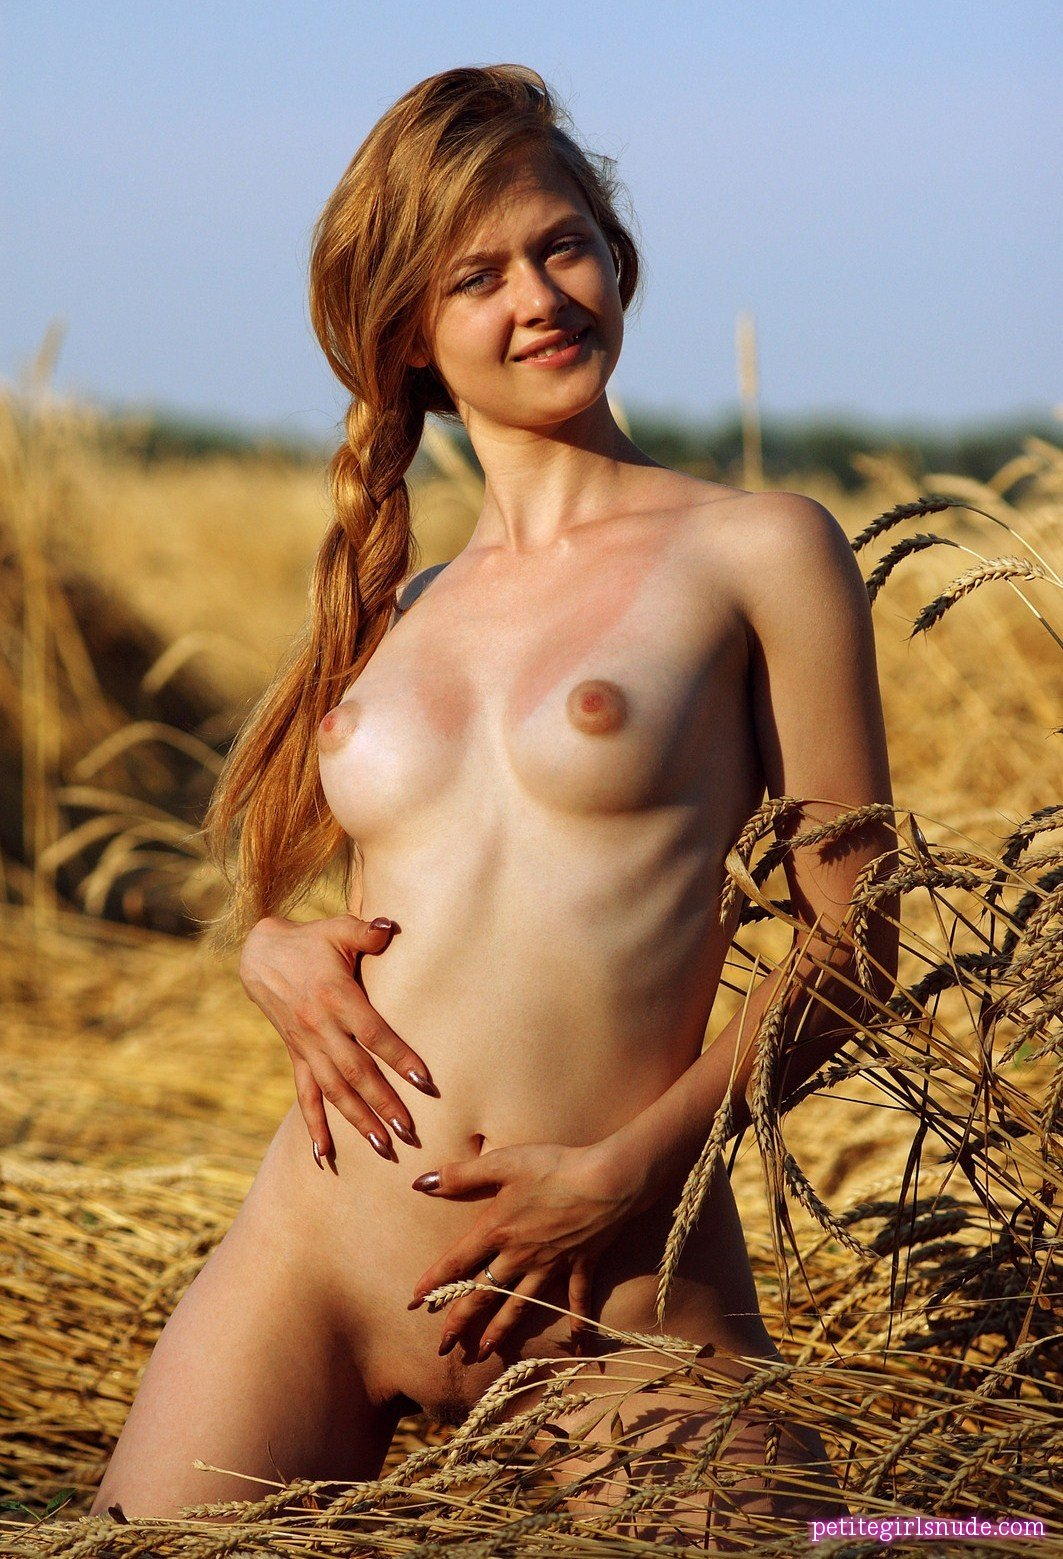 lactating women nude